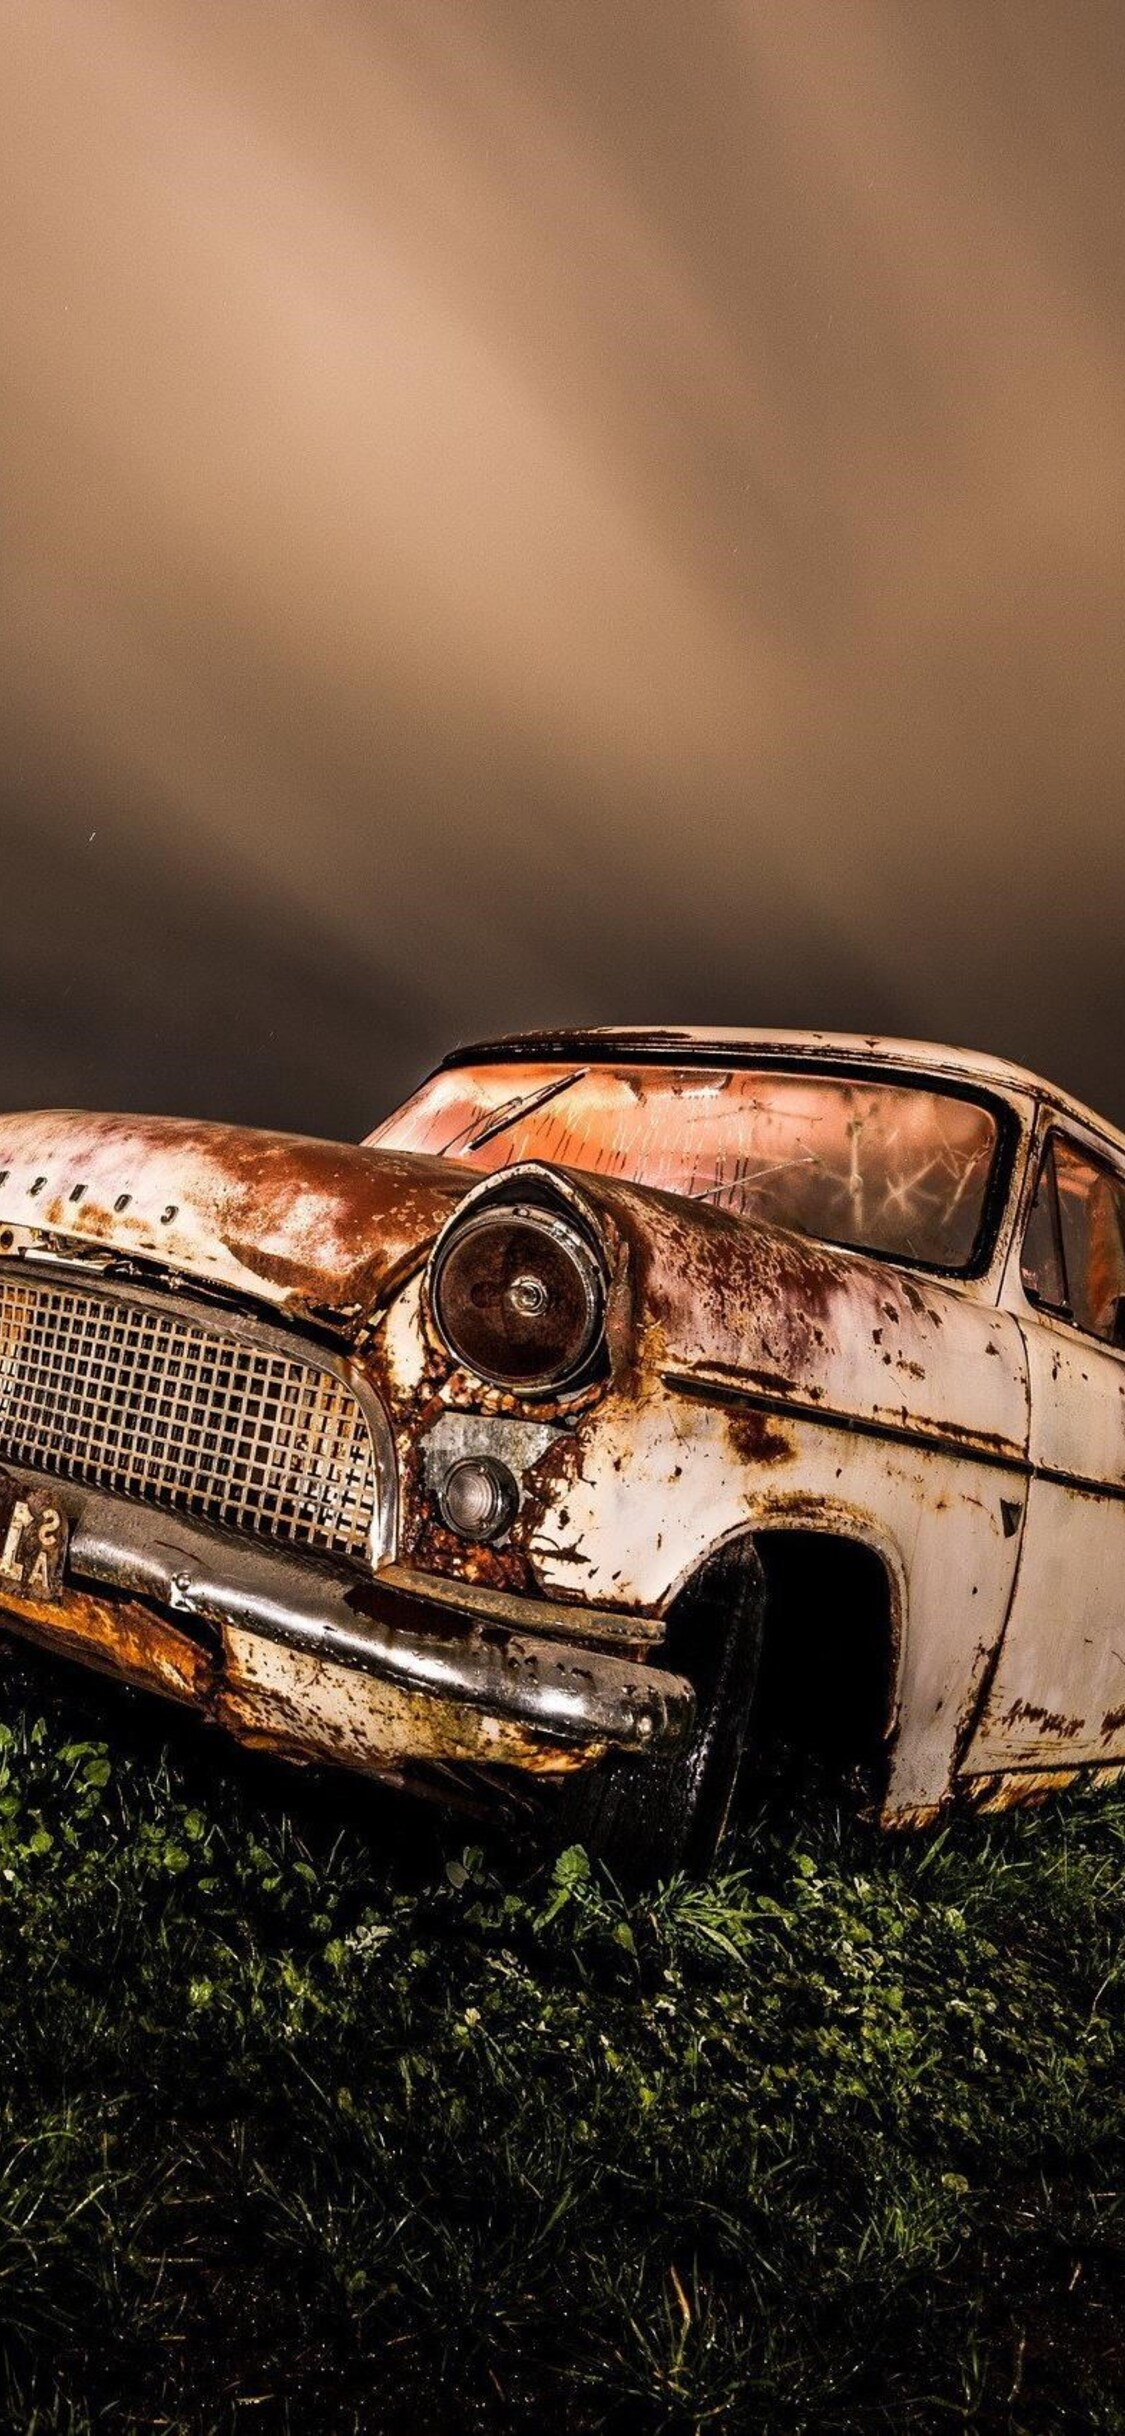 1125x2436 Wrecked Vintage Car Iphone Xs Iphone 10 Iphone X